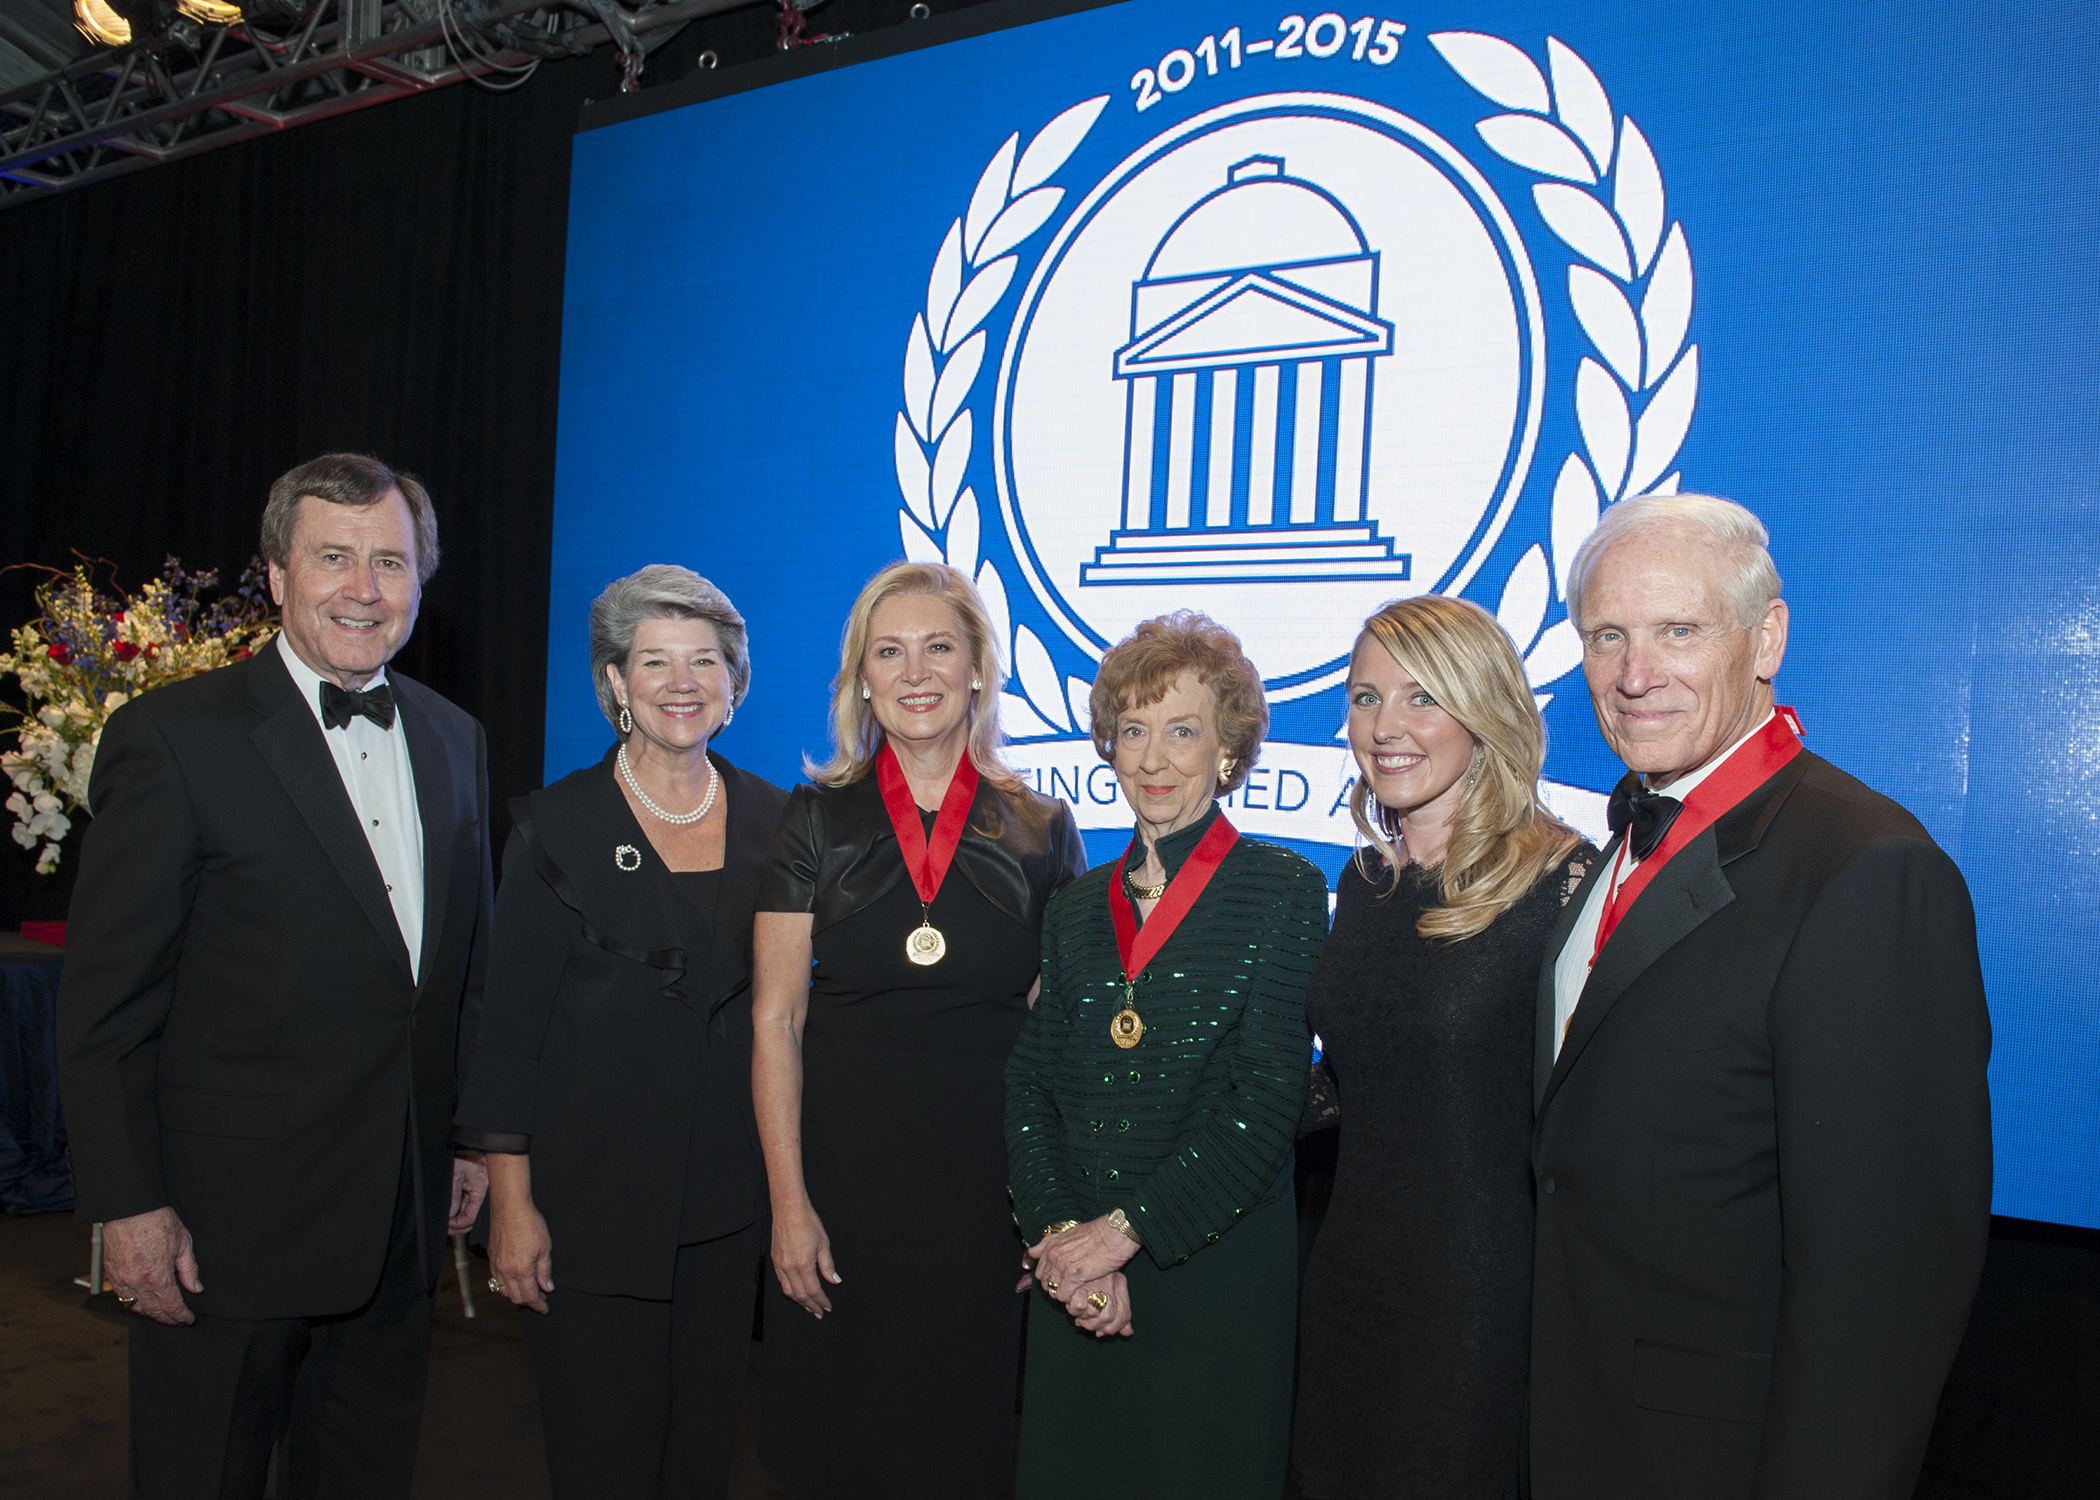 (left to right) SMU President R. Gerald Turner, SMU Alumni Board Chair Leslie Melson, Peggy Higgins Sewell, Jeanne Roach Johnson, Brittany Merrill Underwood, and Jody Grant.